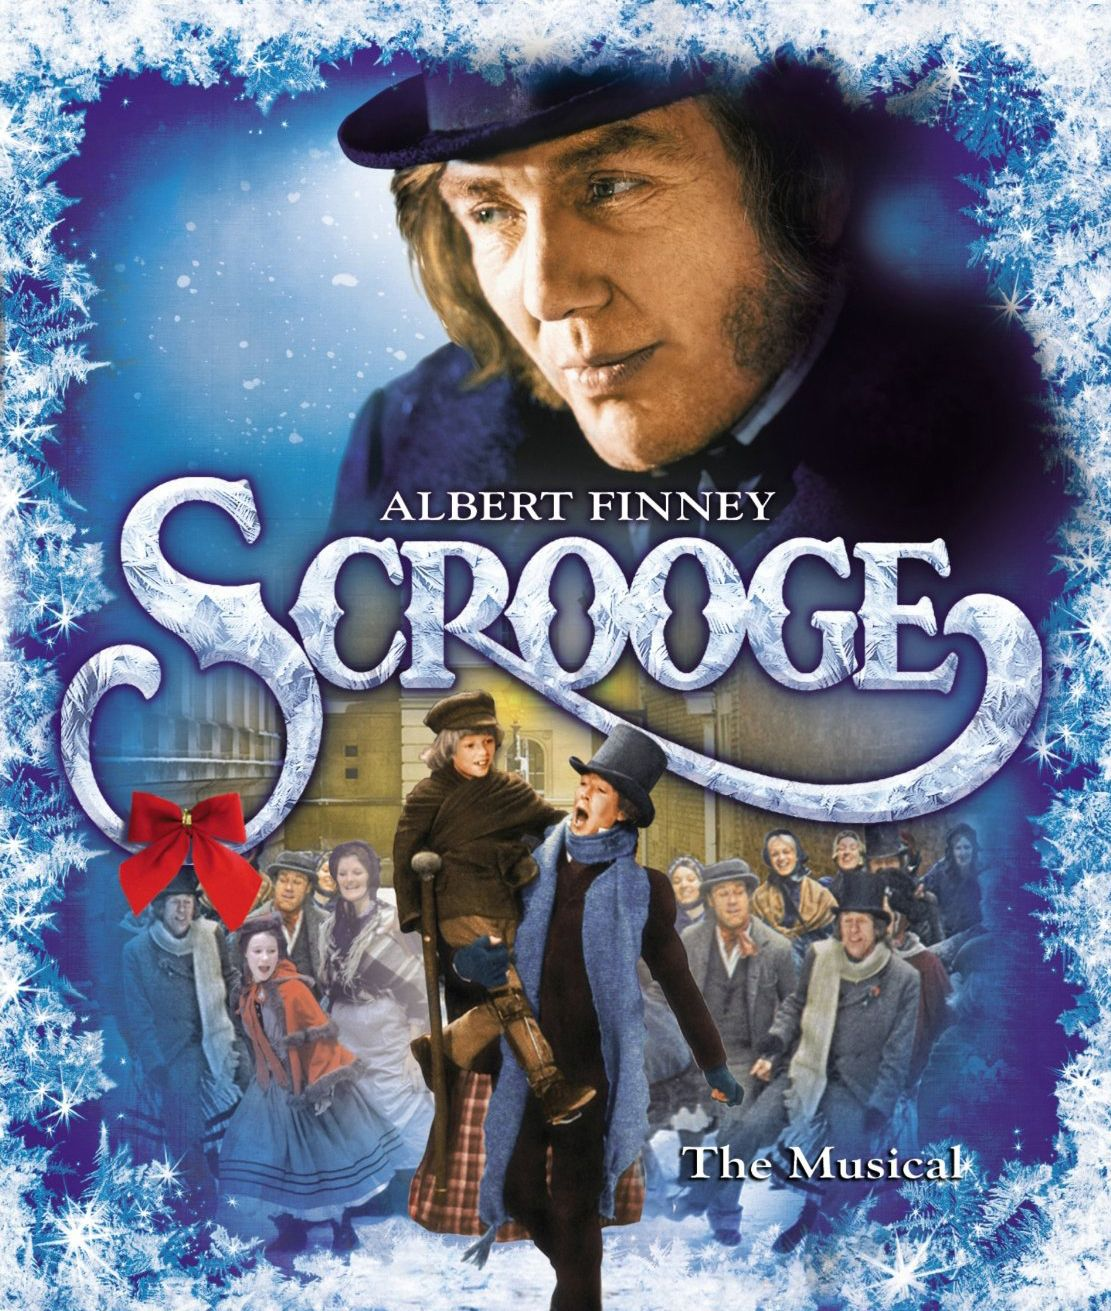 scrooge 1970 Scrooge is a 1970 musical film adaptation